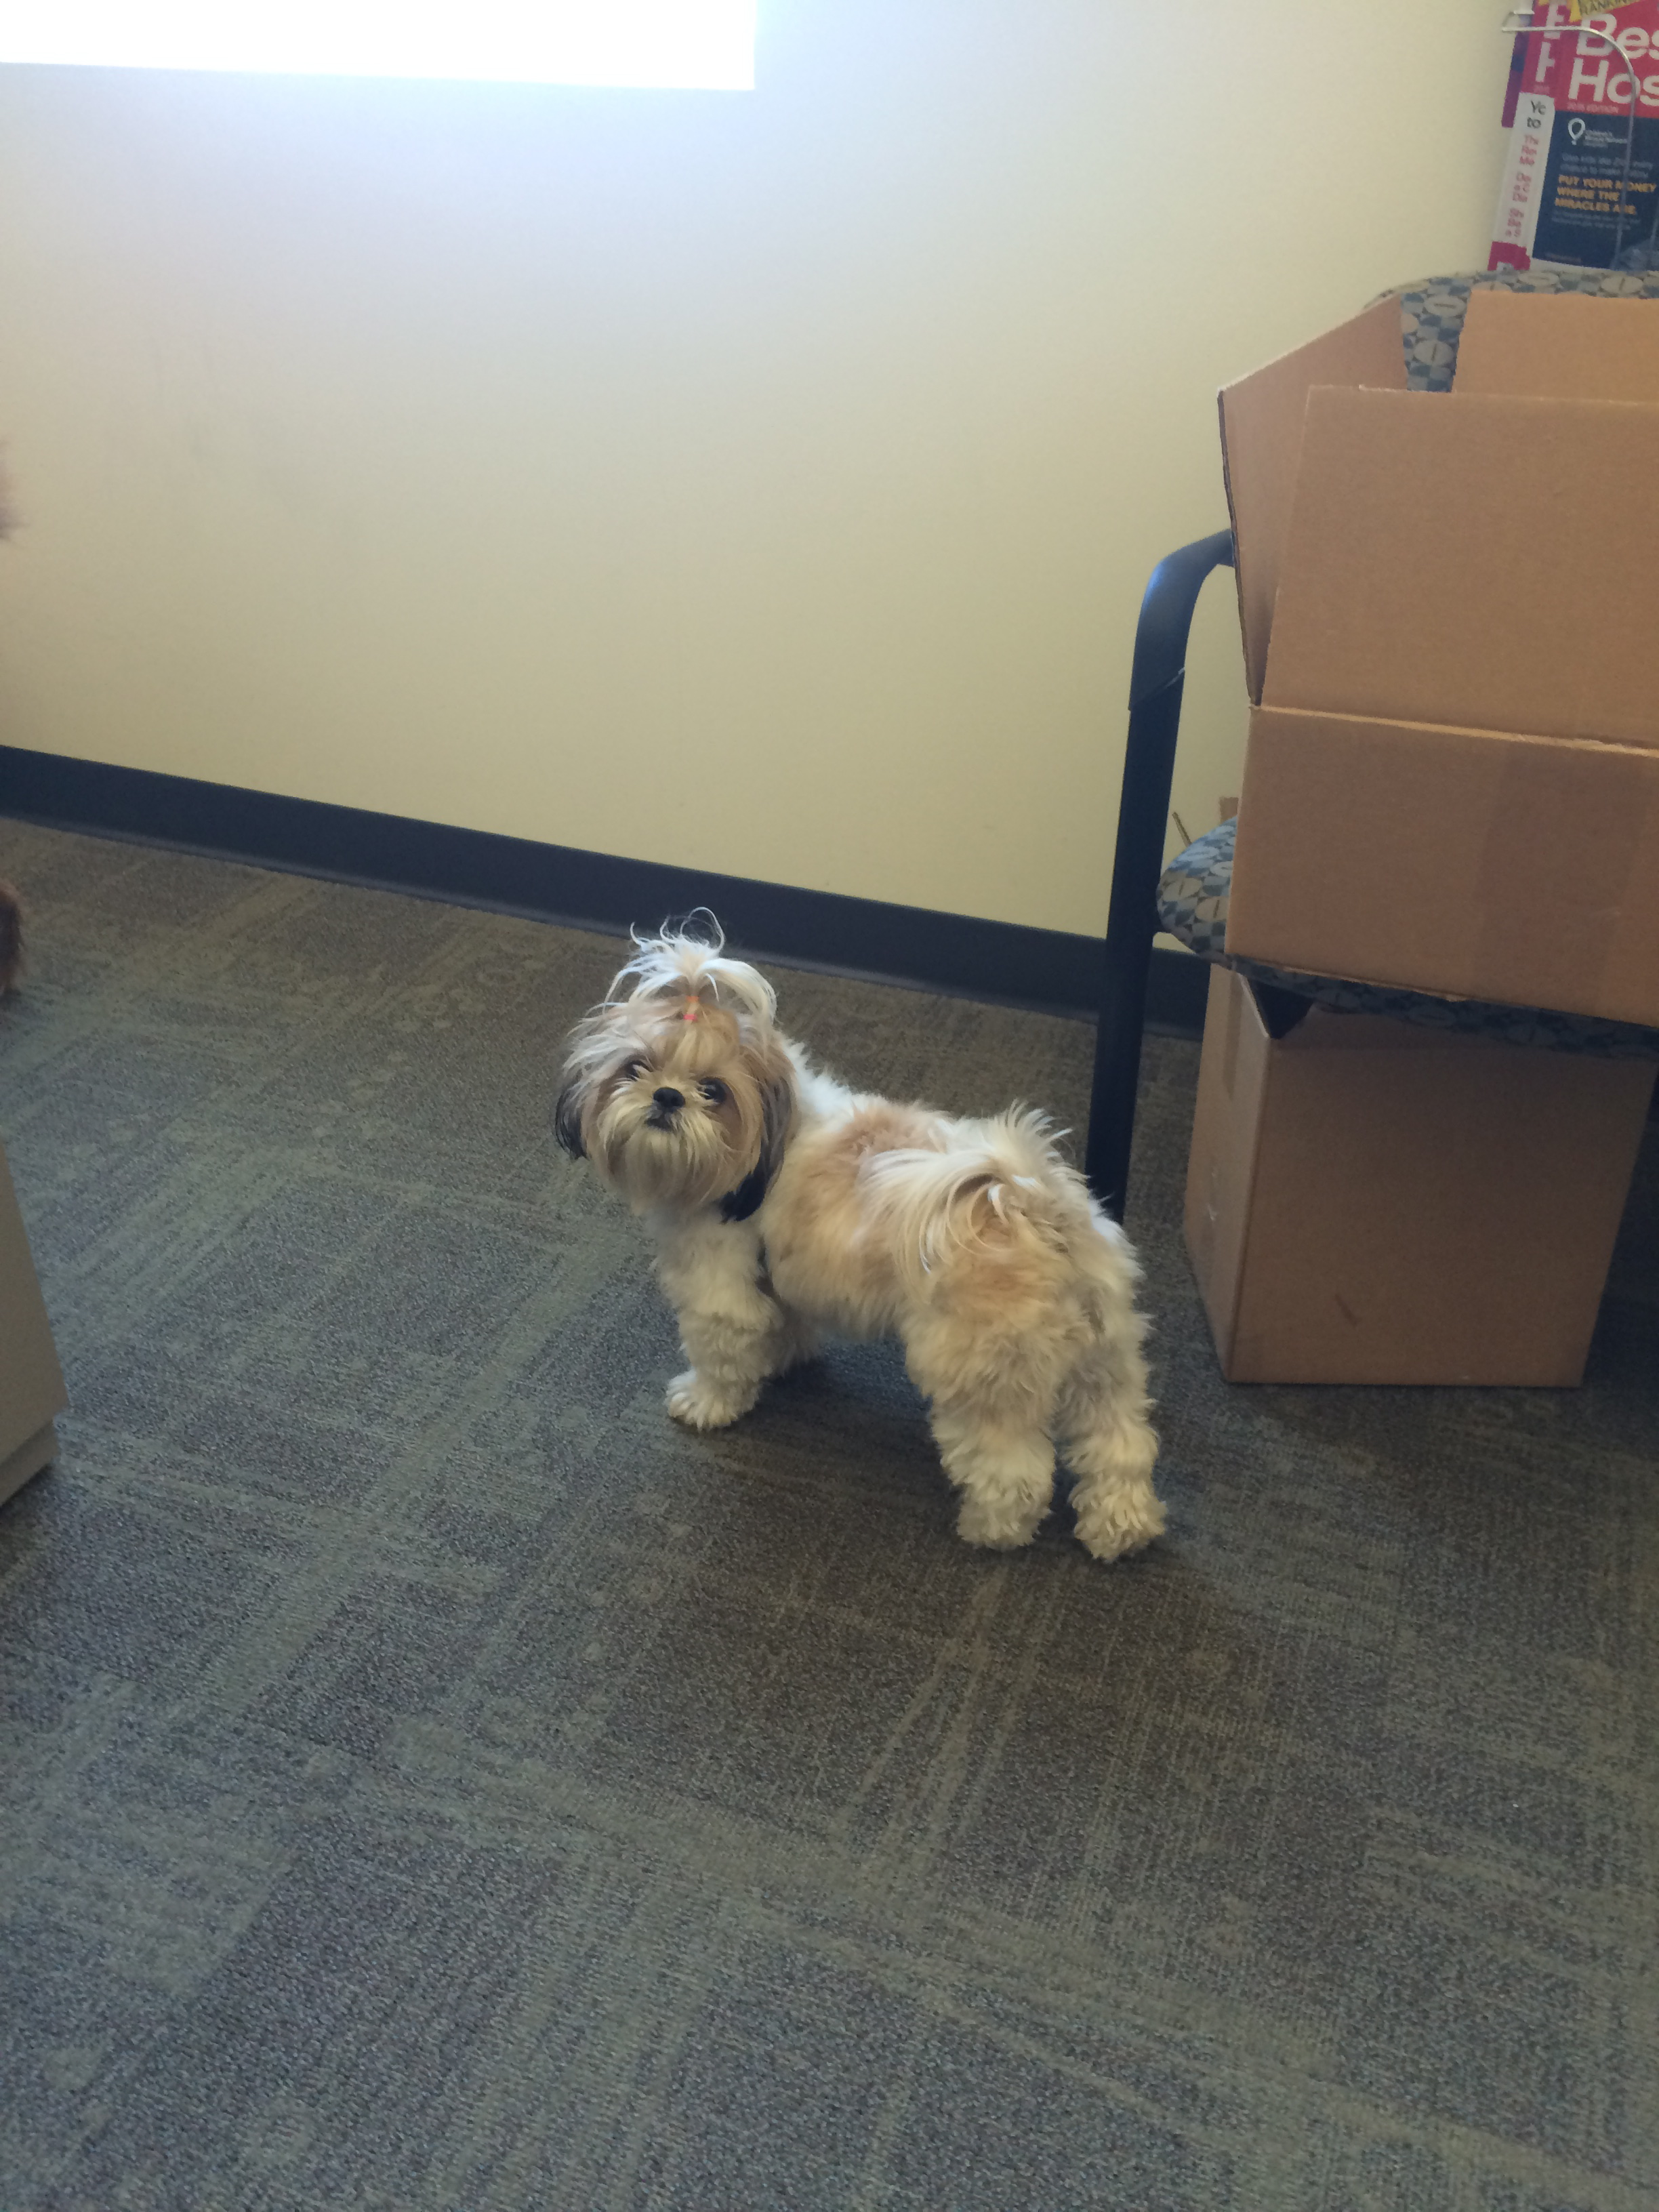 Bring your dog to work day! August 27, 2015462